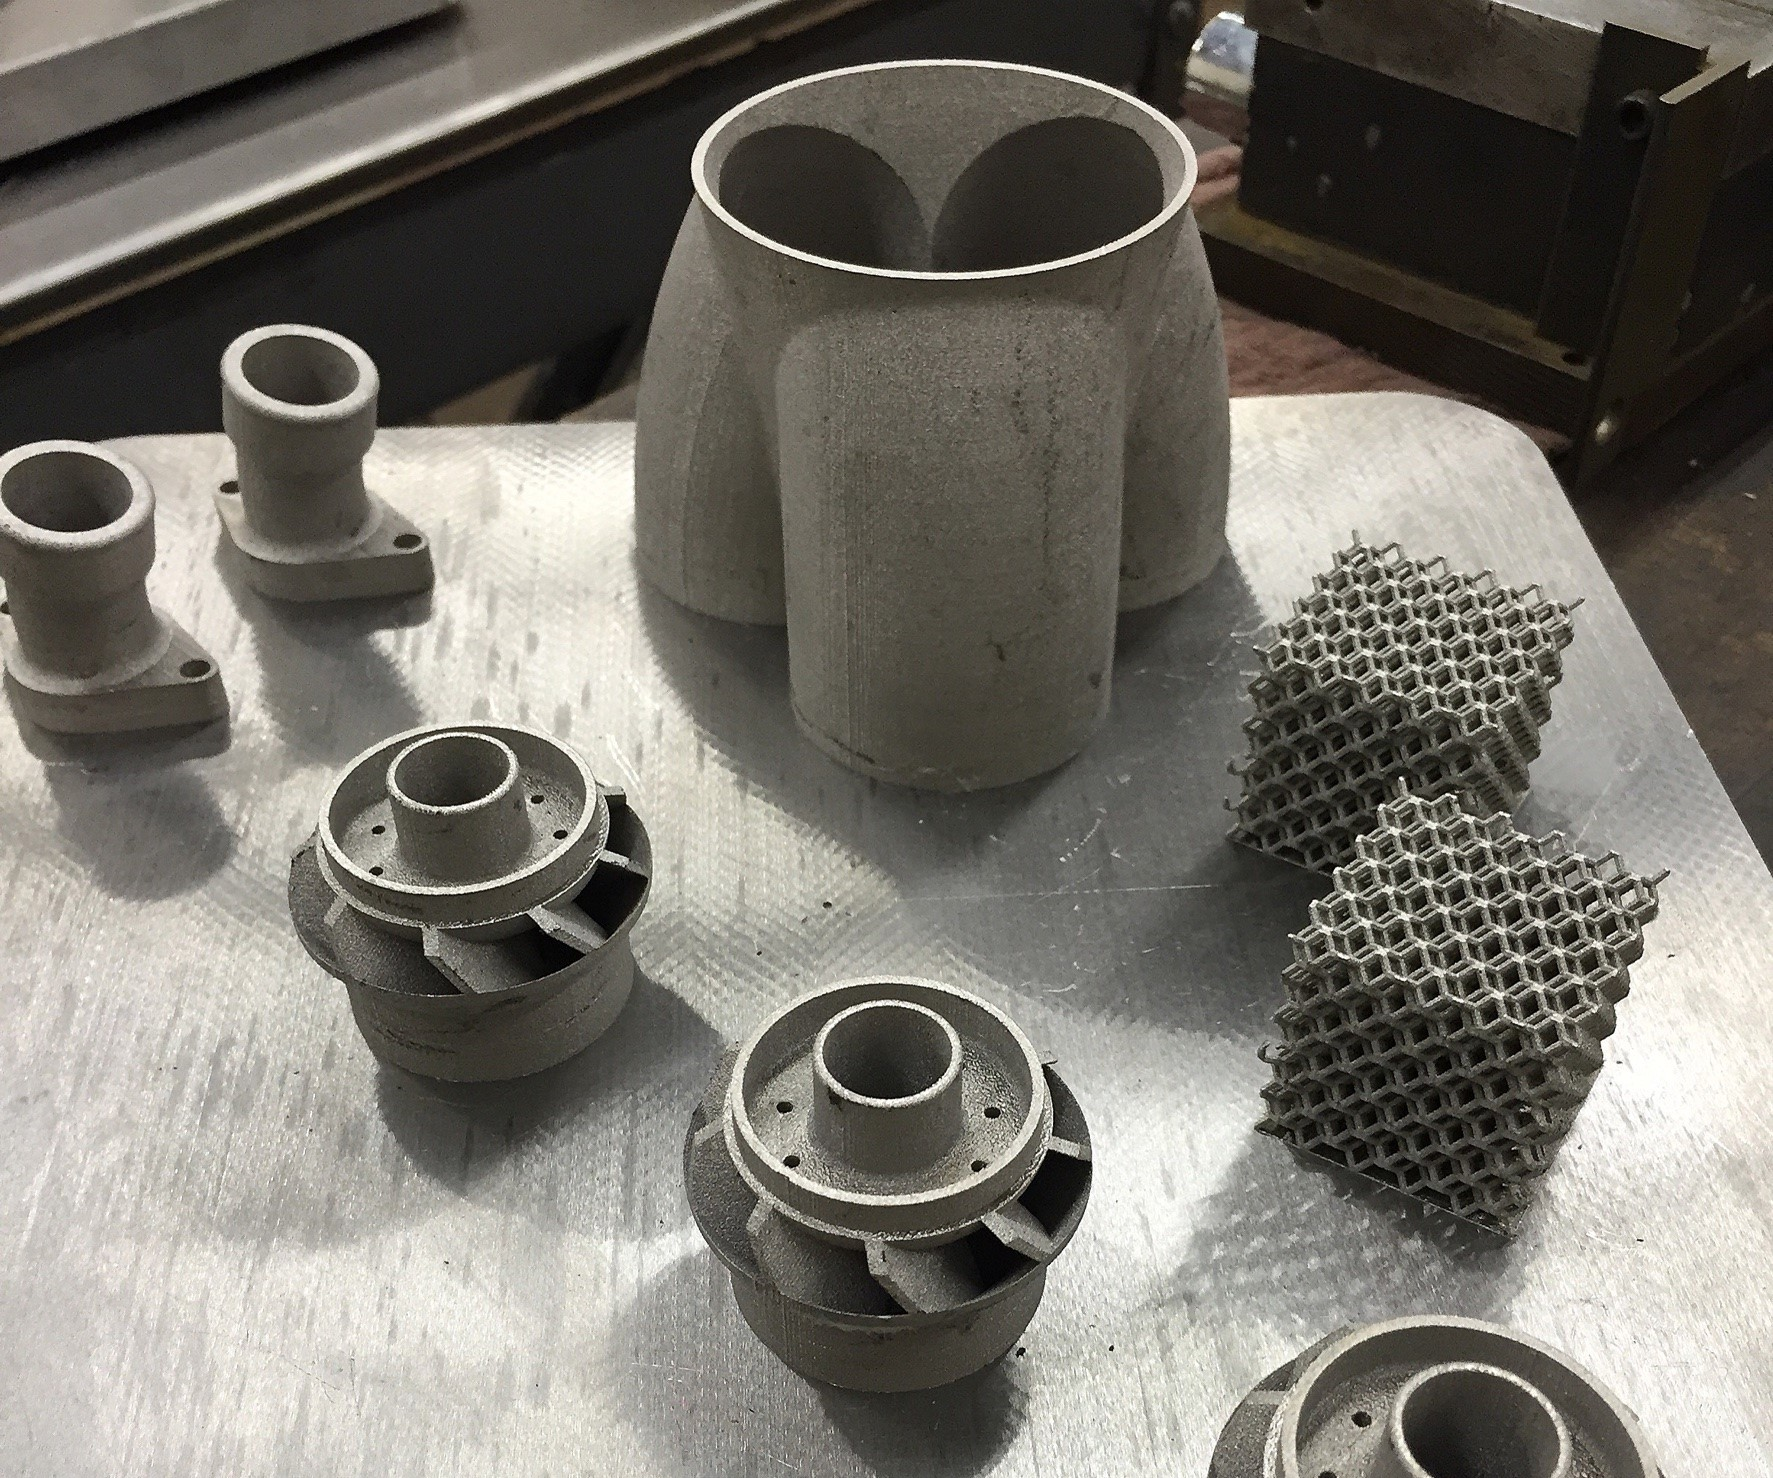 Metal 3D-printed pipe fittings, swirlers, lattice cubes and exhaust manifold